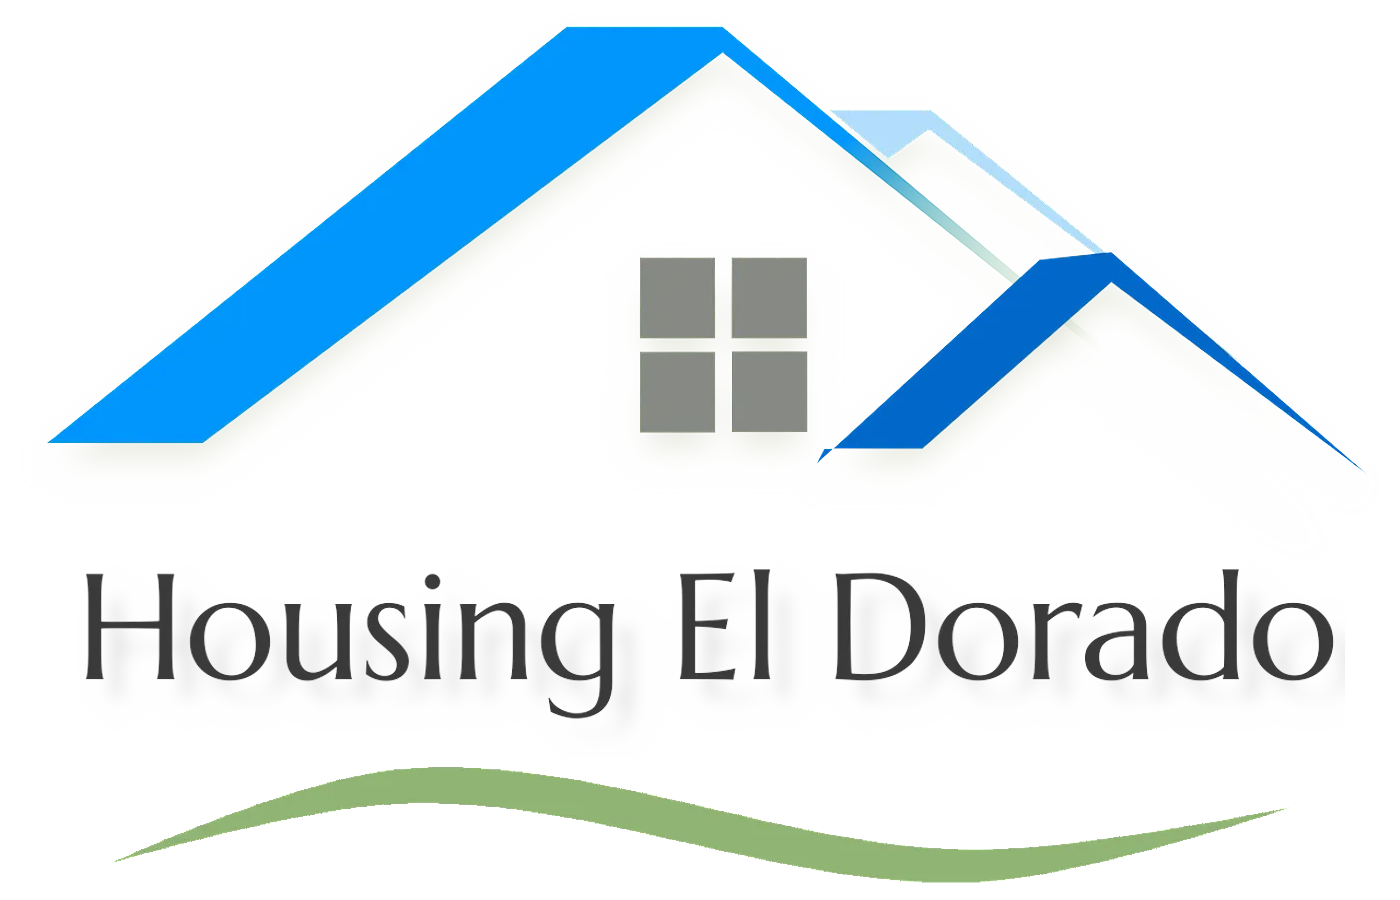 Housing El Dorodo